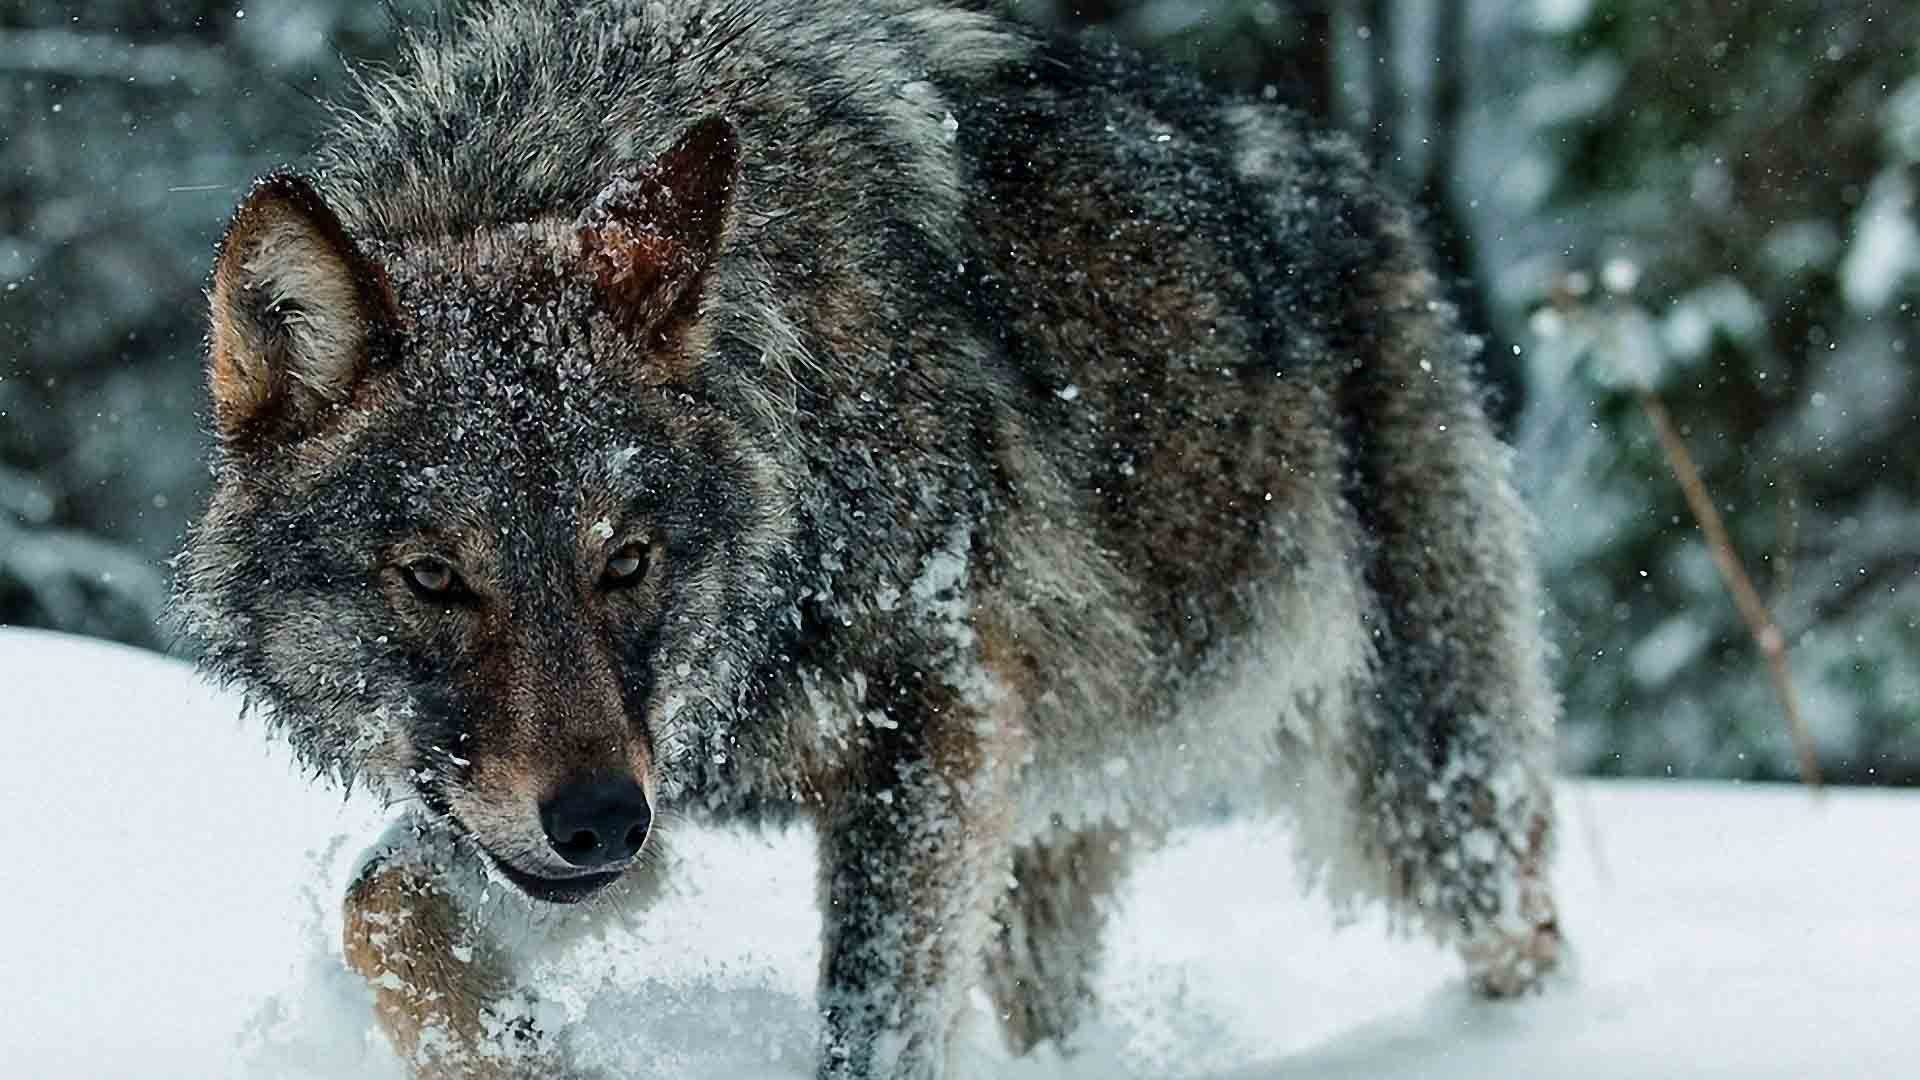 hunter spirit mythical wild animal black pack wolves wolf the white  beautiful timber lone canis lupus snow solitude friendship lobo canine grey  nature …